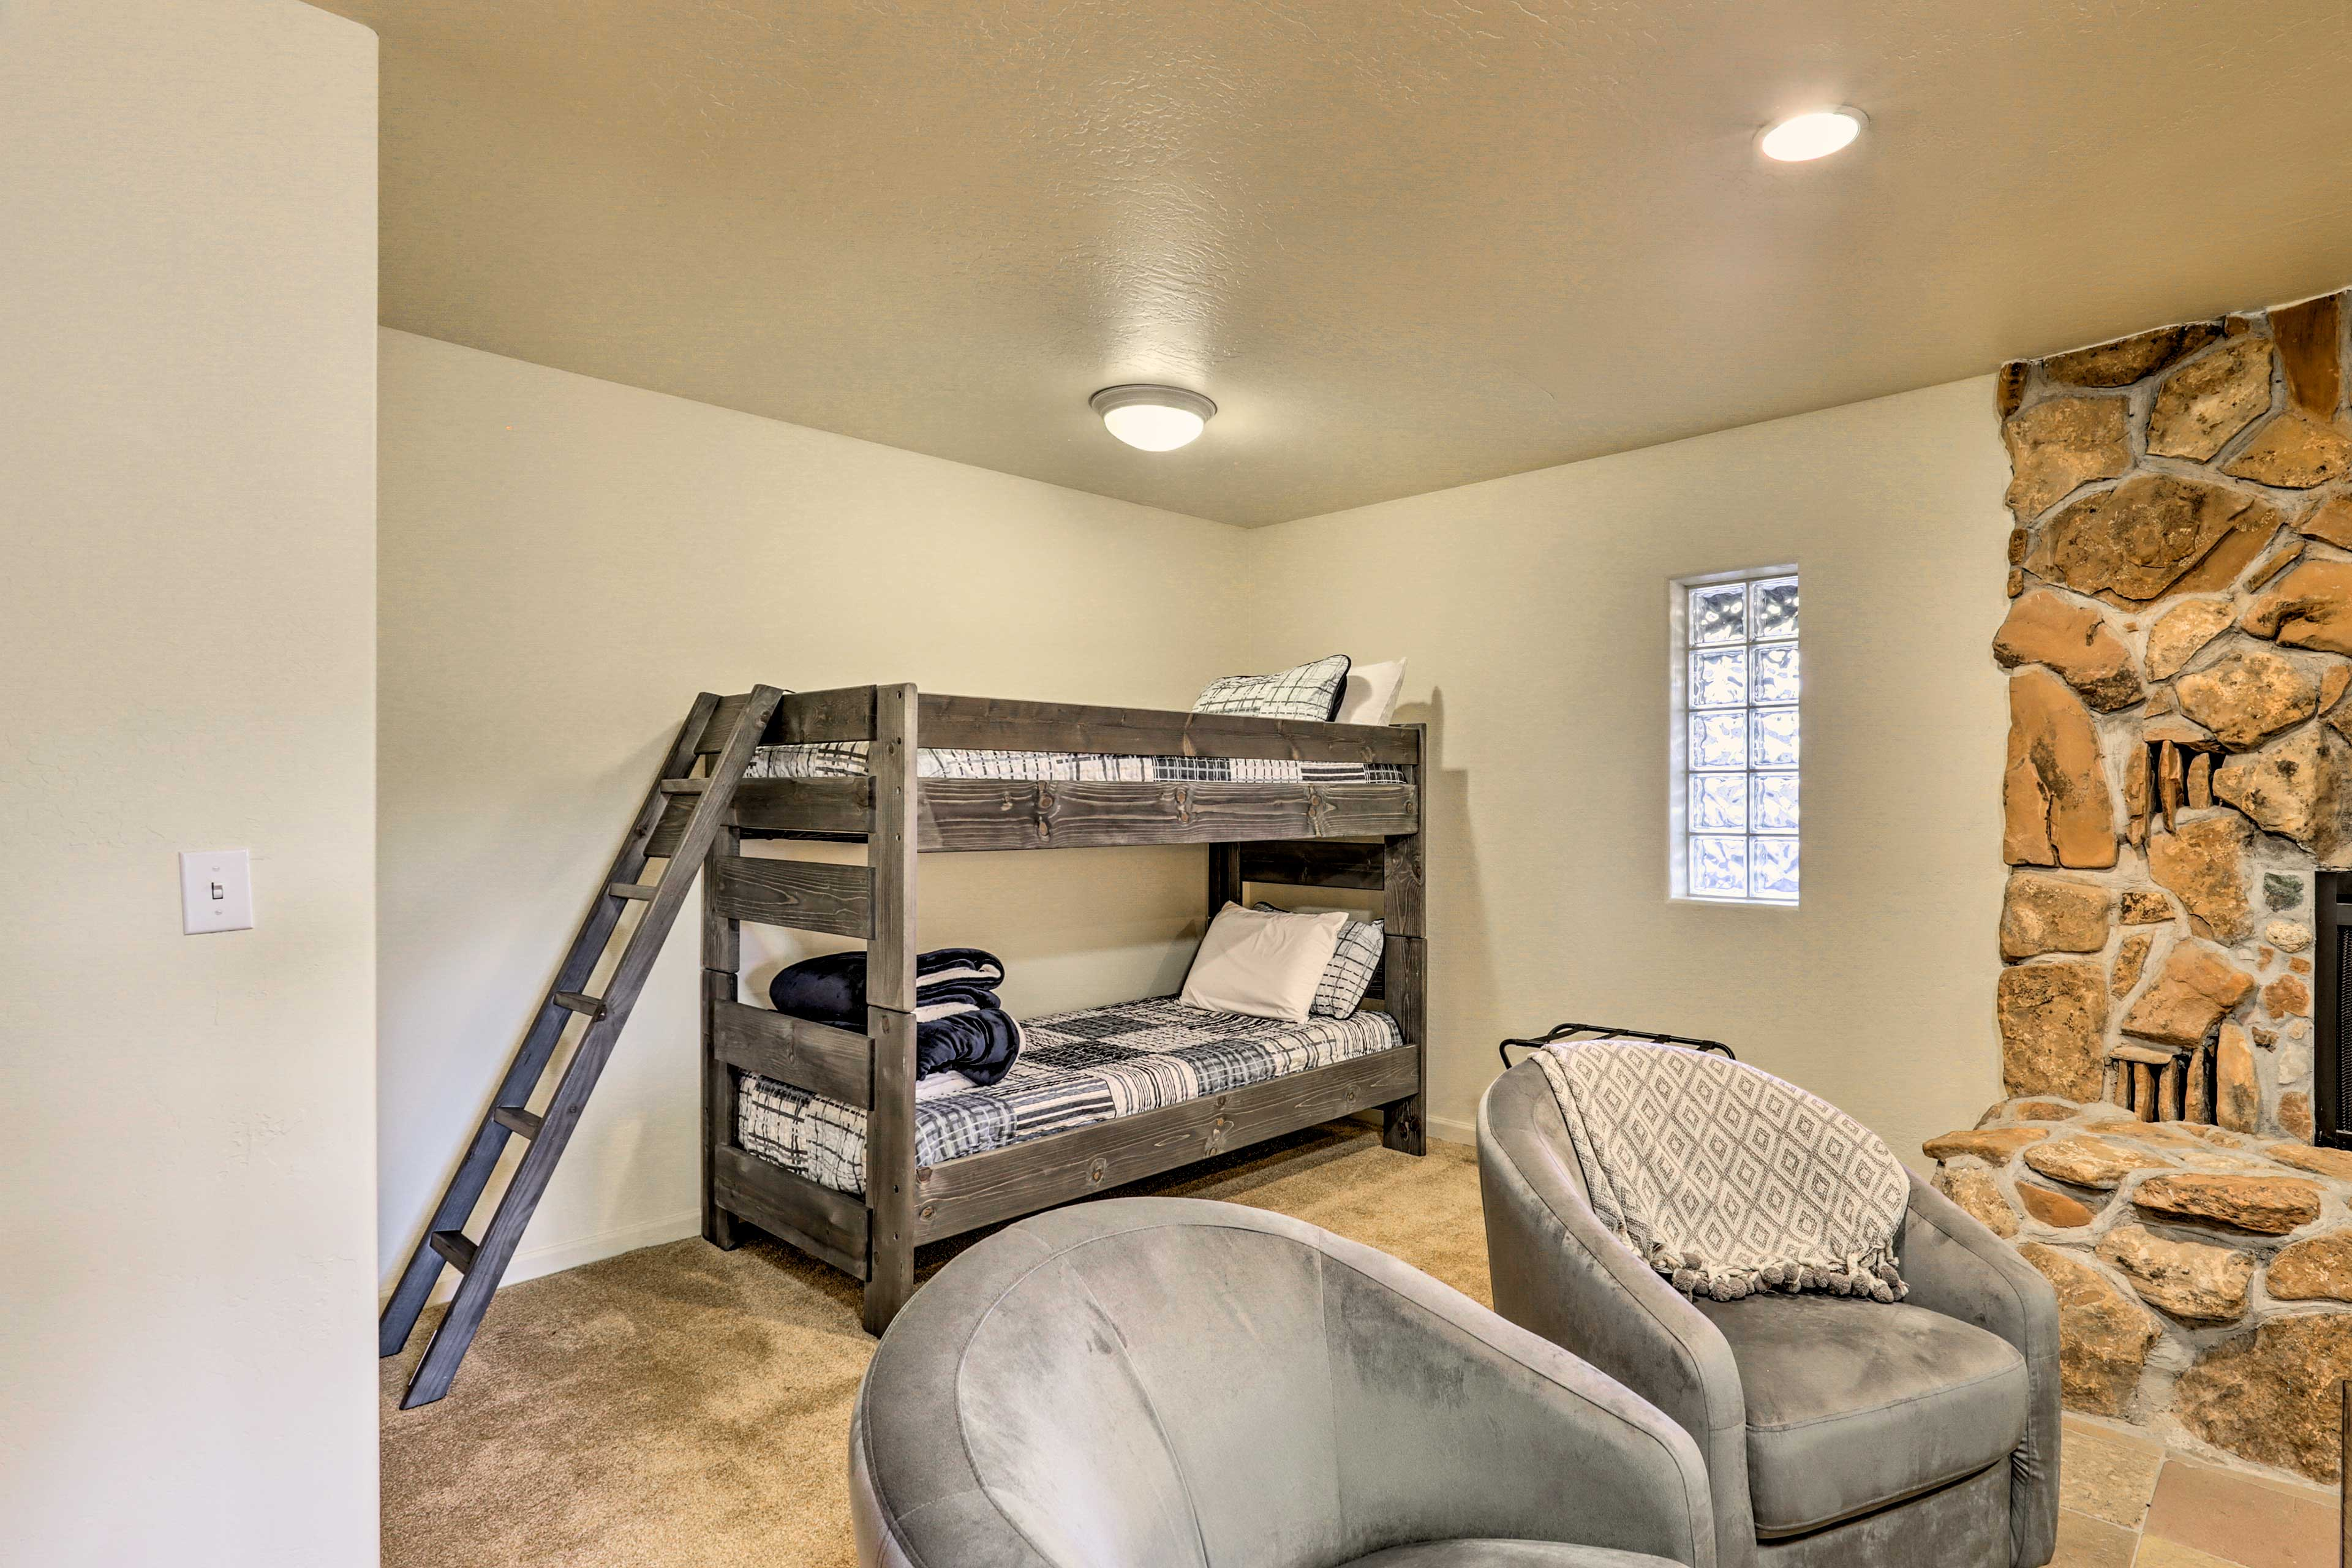 Twin bunk beds in the basement offer sleeping room for 2 more guests.